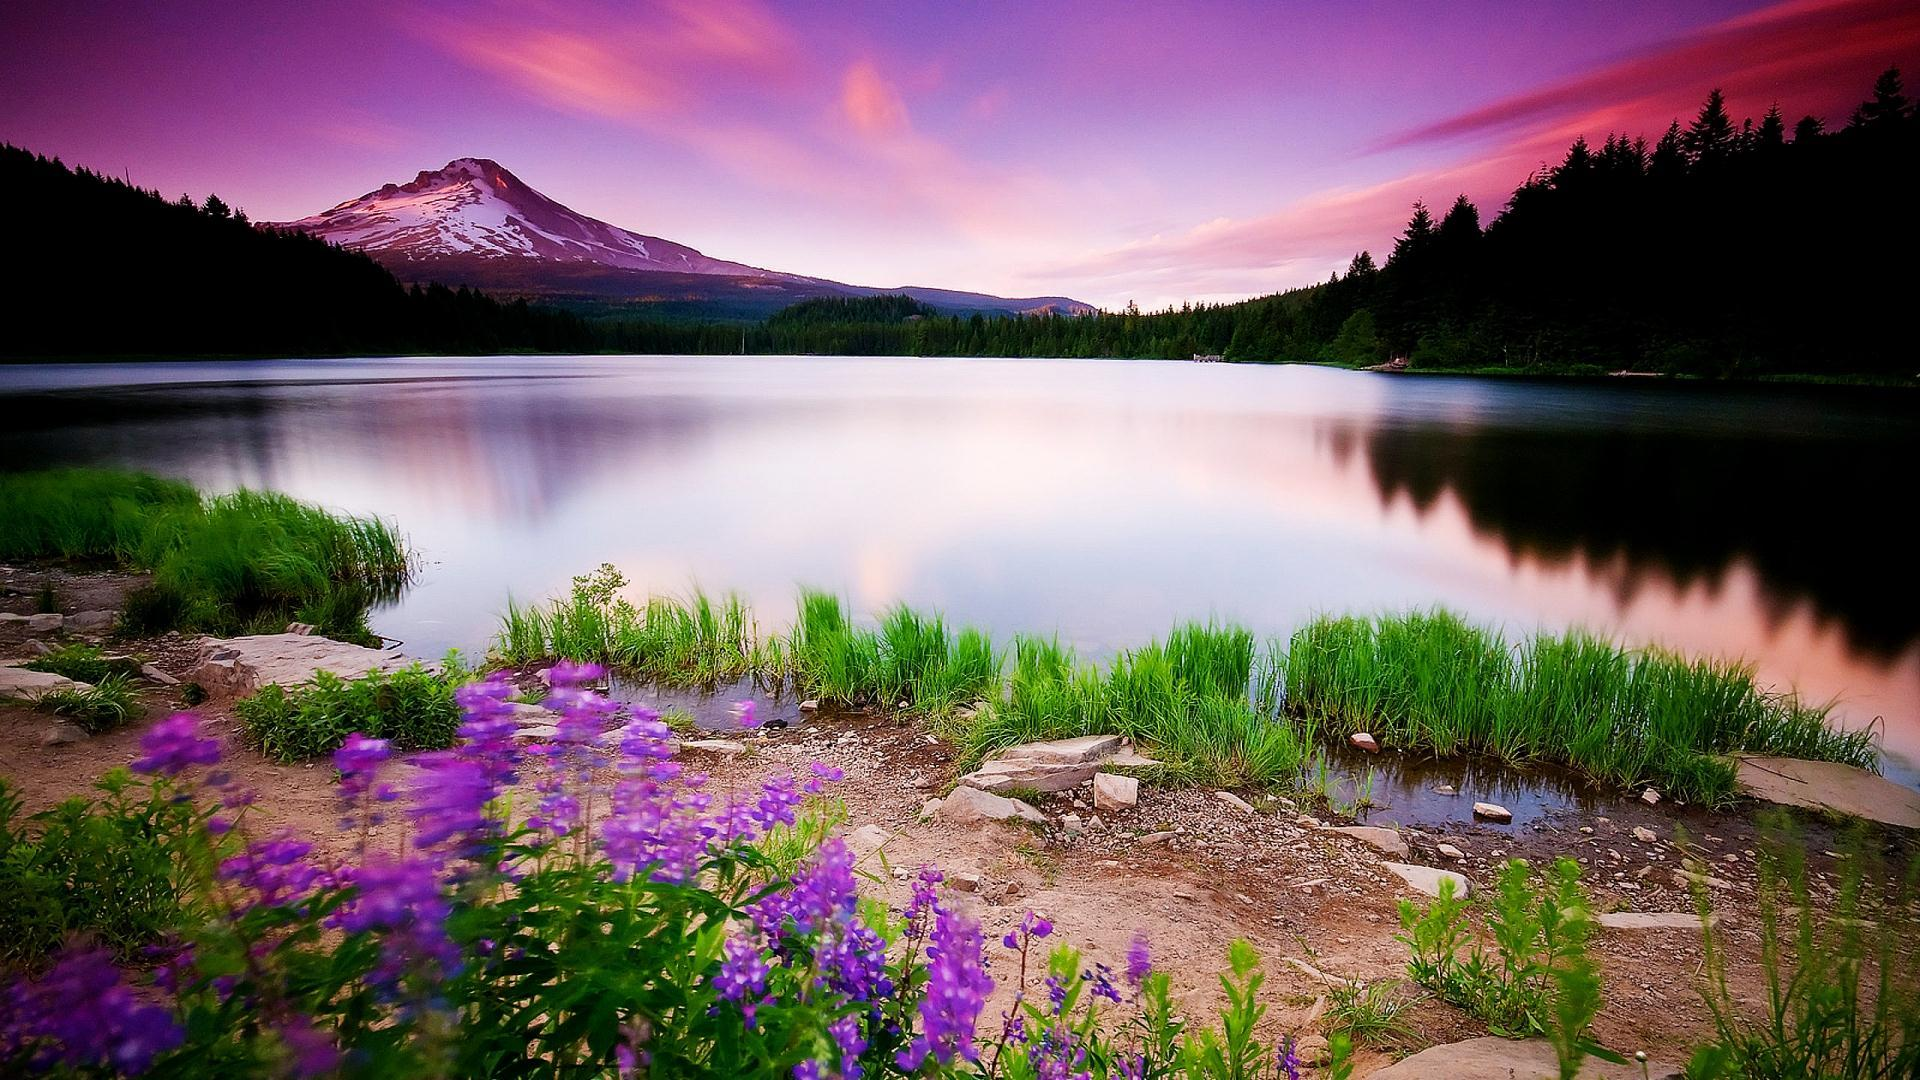 Nature Background wallpaper – Creativity at Its Best